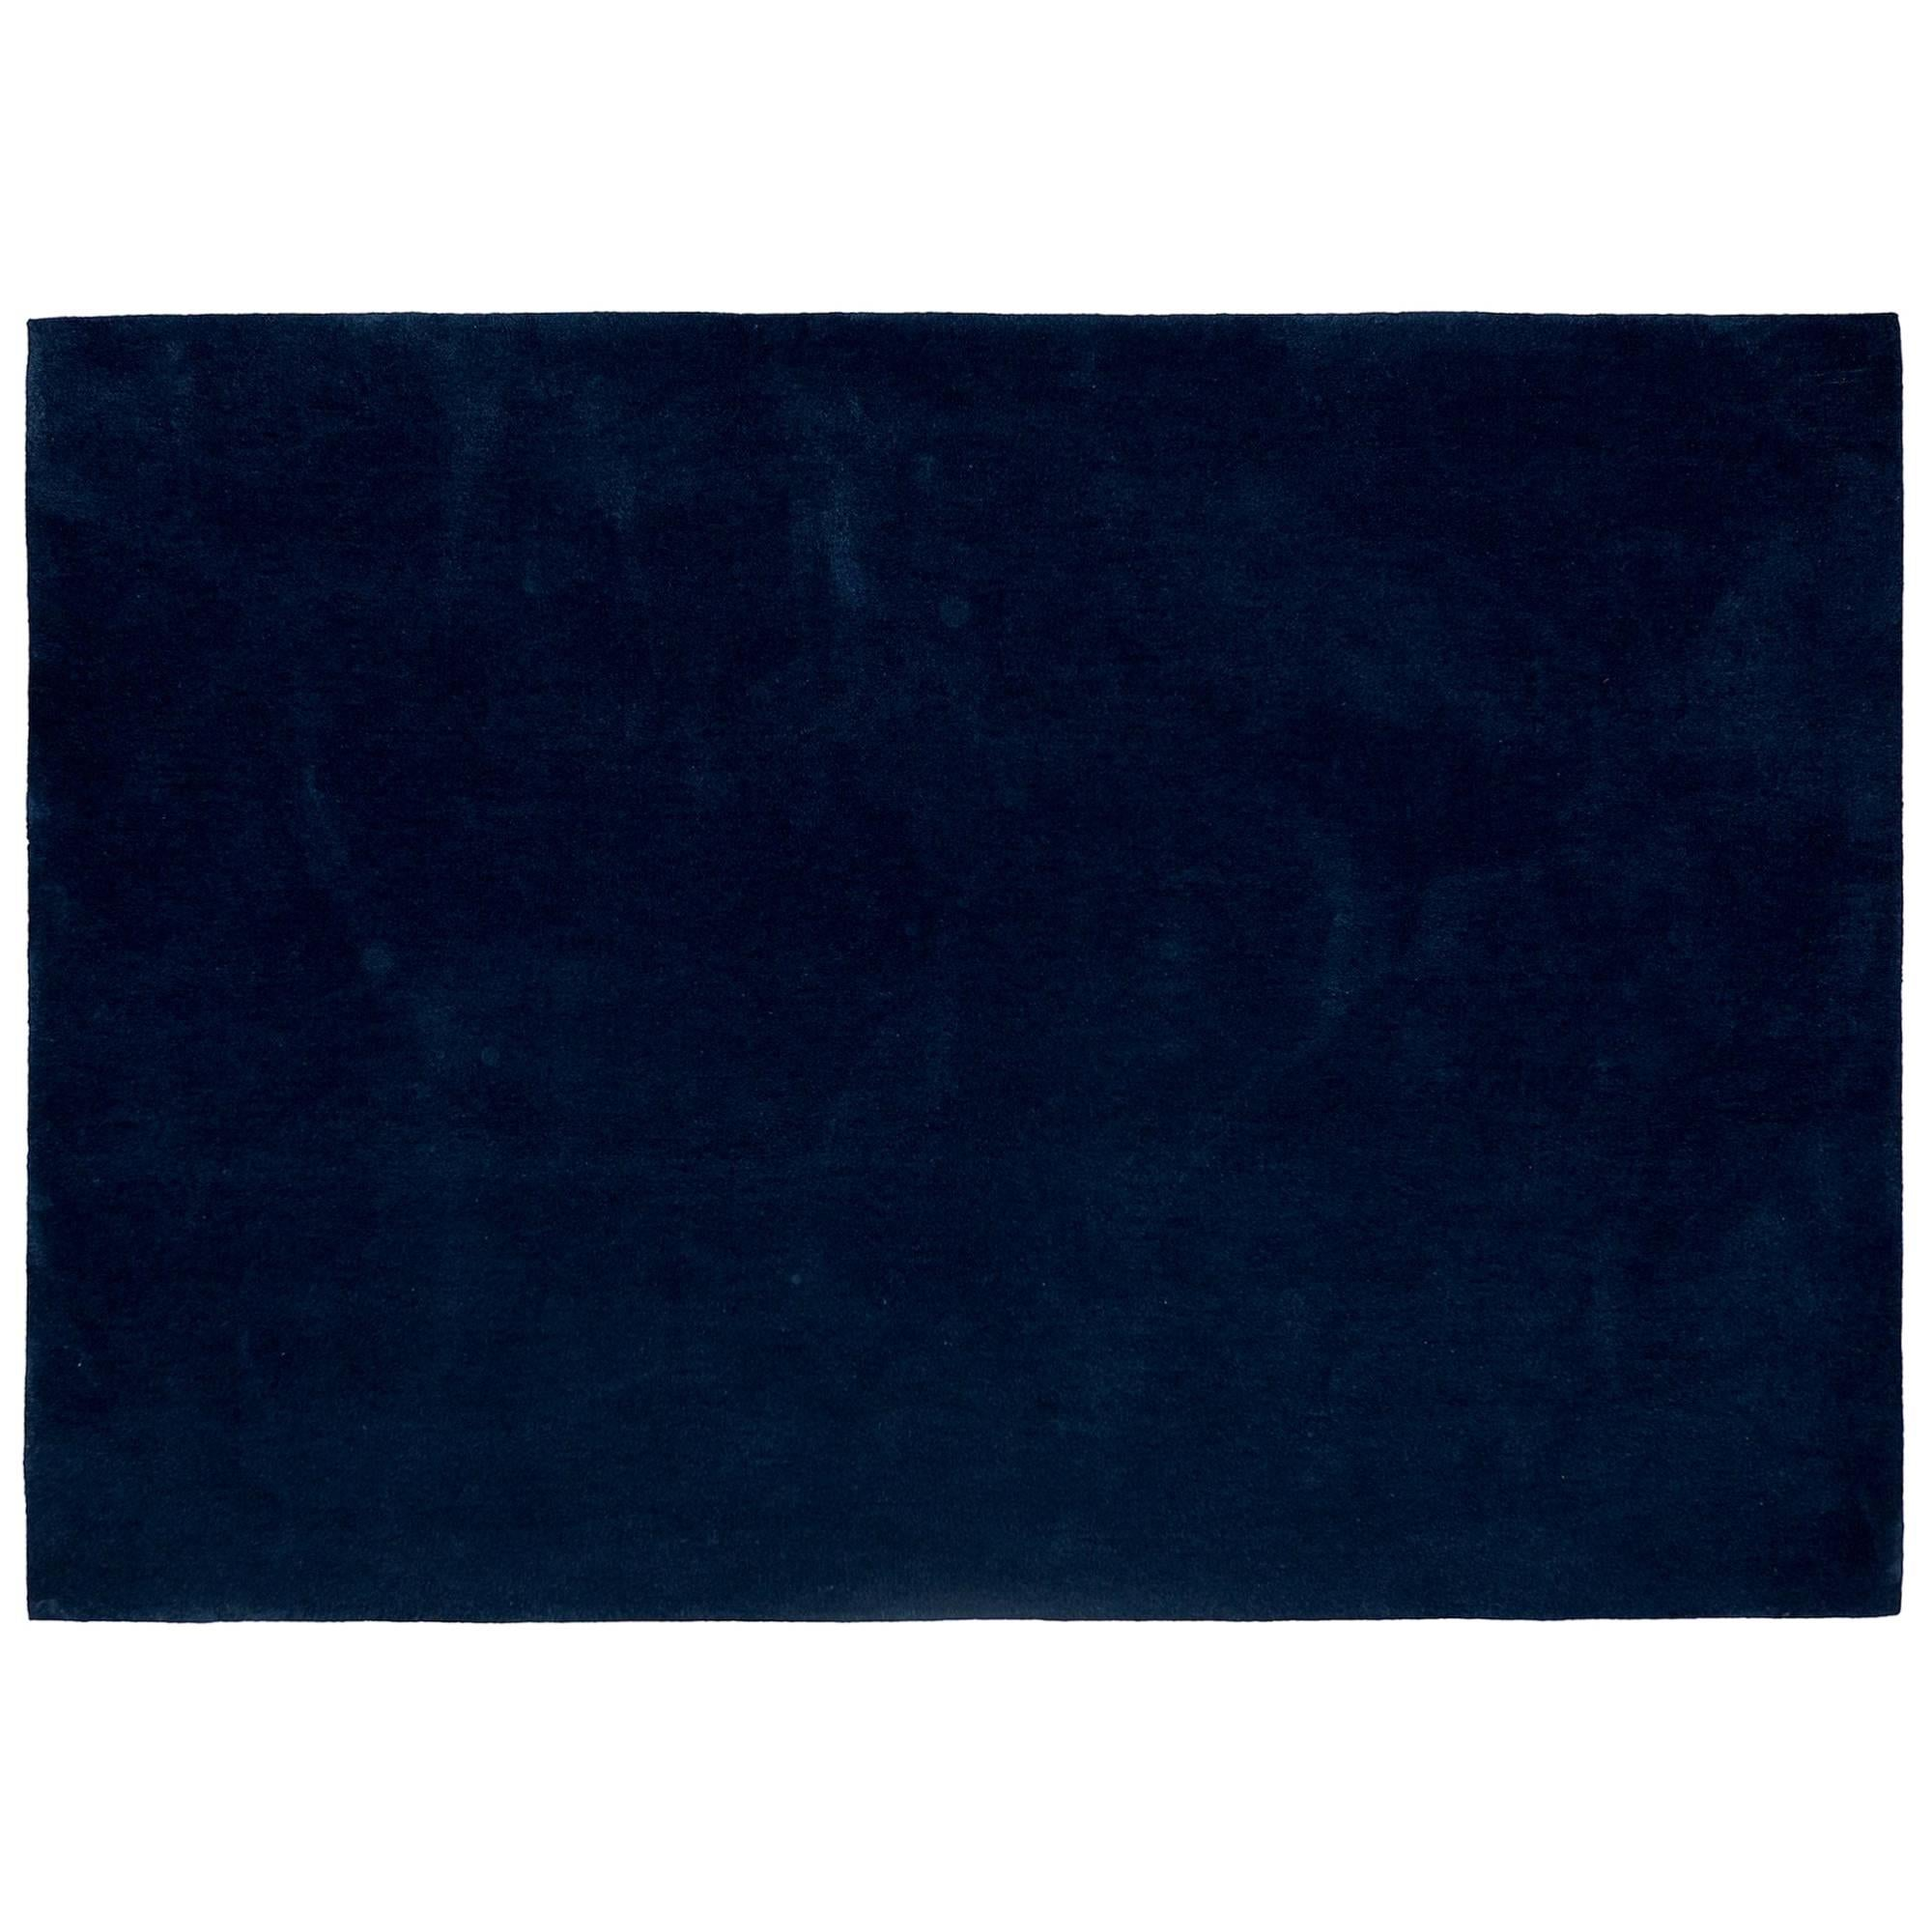 'Bleu Pinton' Hand-Tufted Area Rug in Midnight Blue by Pinton